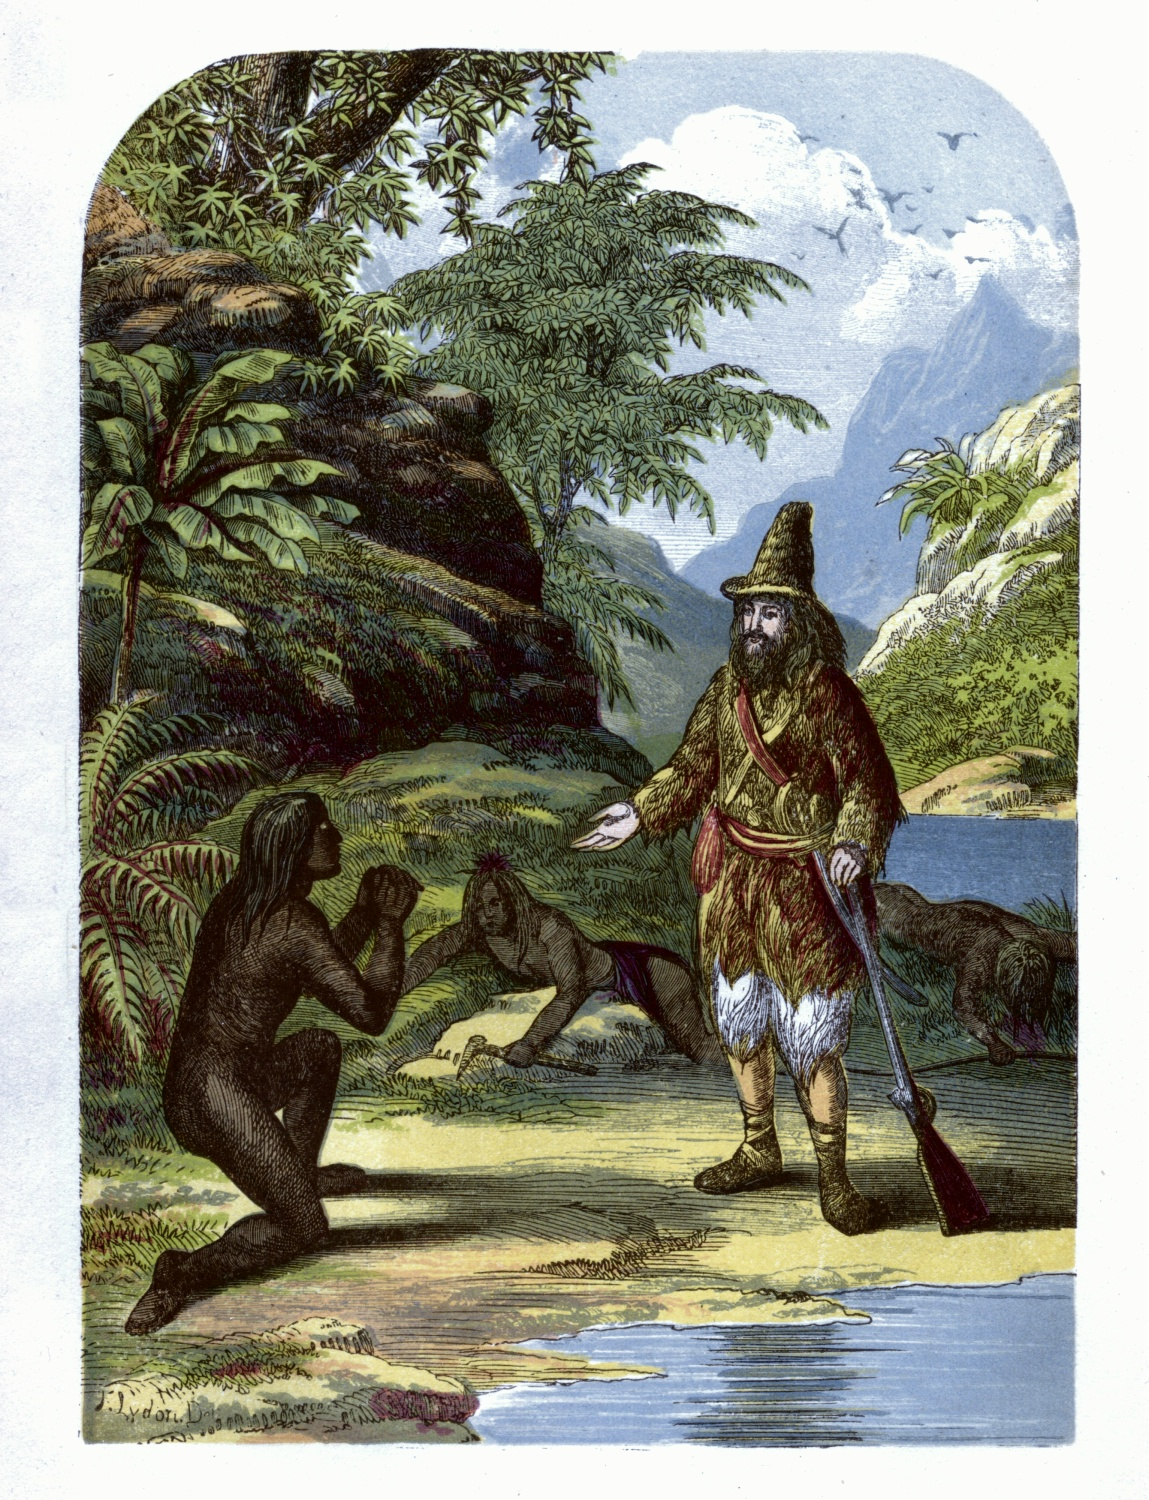 Robinson Crusoe rescuing Friday from the savages